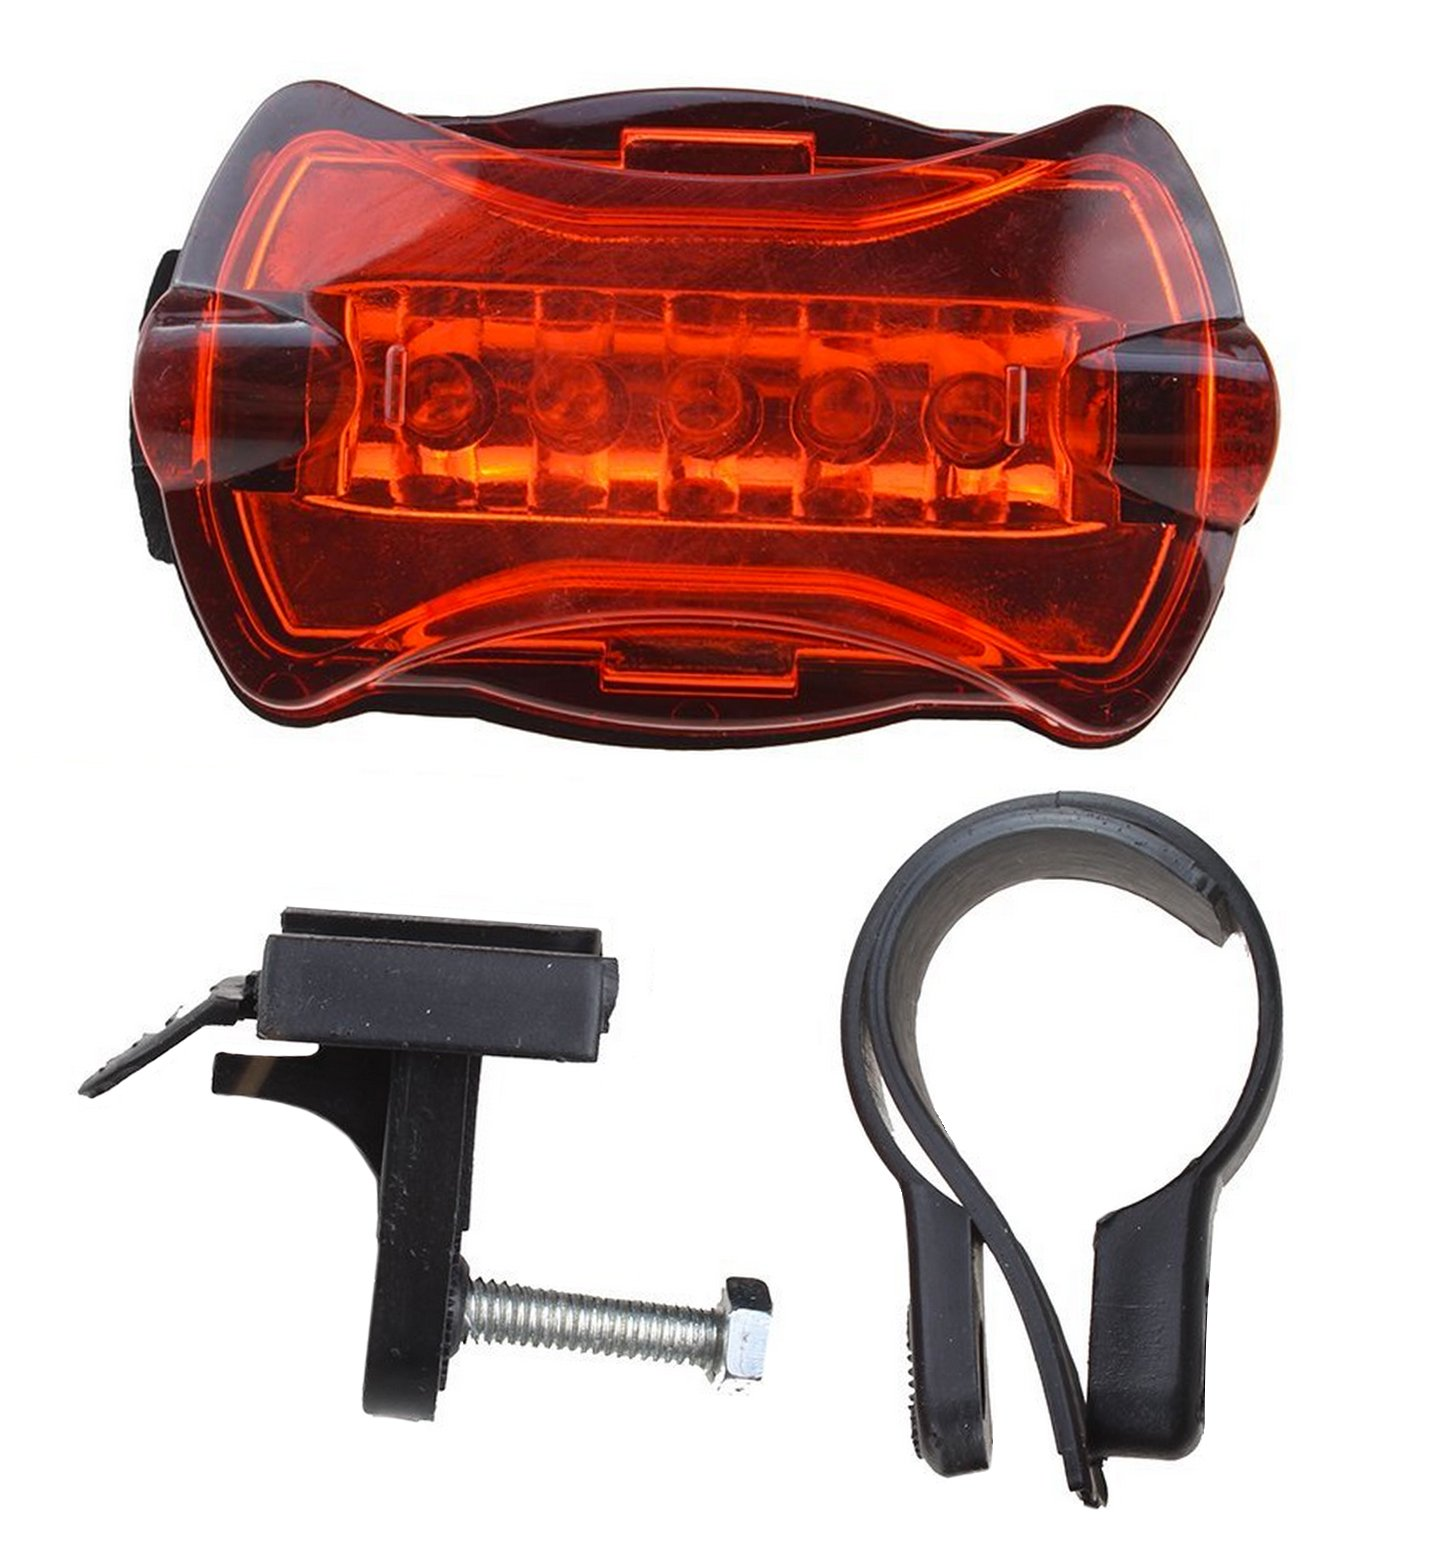 LED BIKE LIGHT SET. Bicycle headlight & taillight combo. Ultrabright 5 LED kit.. Use on bike or scooter. FREE high visibility reflectors. ~ In BG Lights gift box as pictured by BoG Products (Image #9)